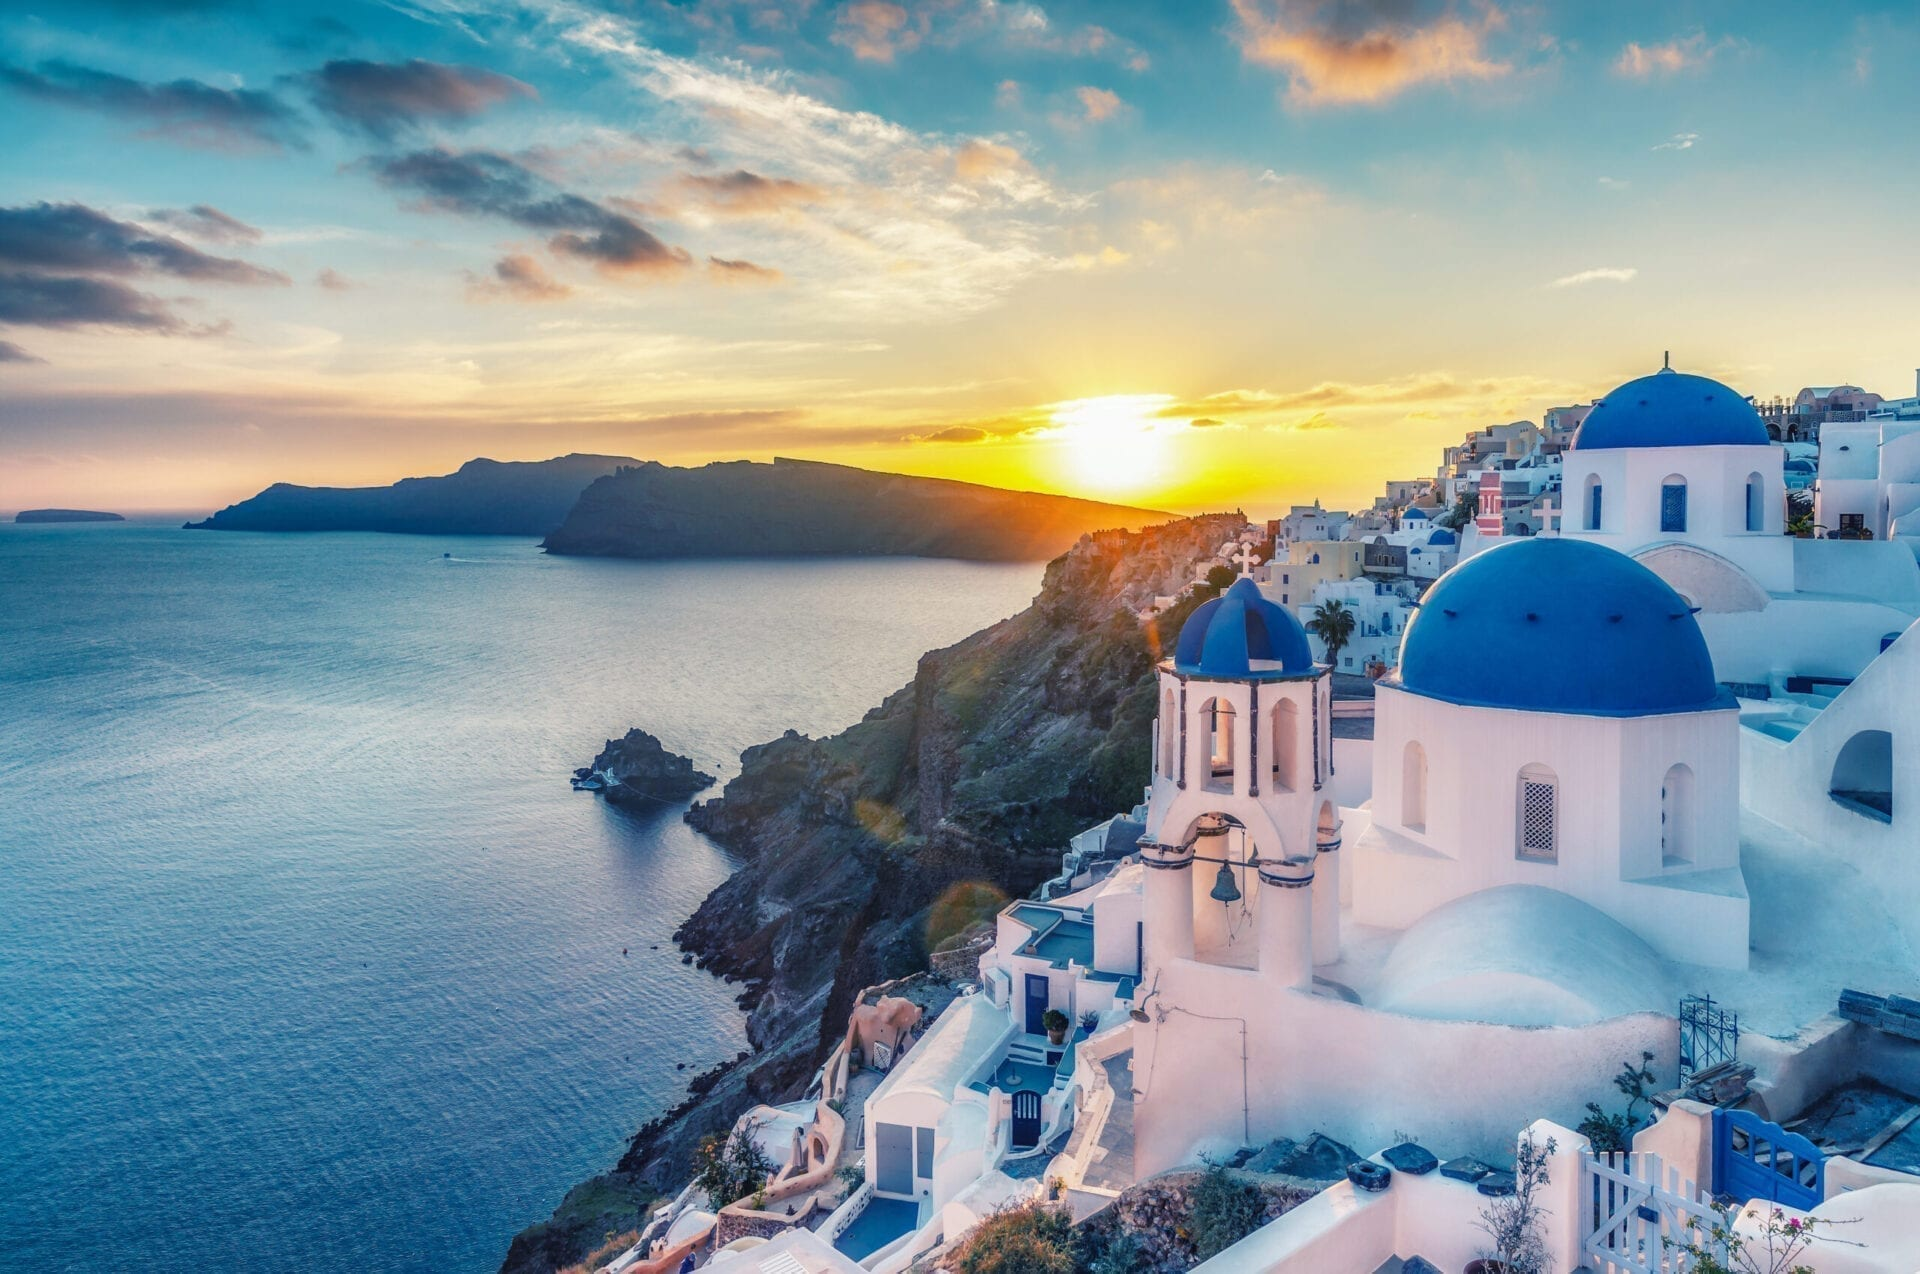 Beautiful view of Churches in Oia village, Santorini island in Greece at sunset, with dramatic sky.